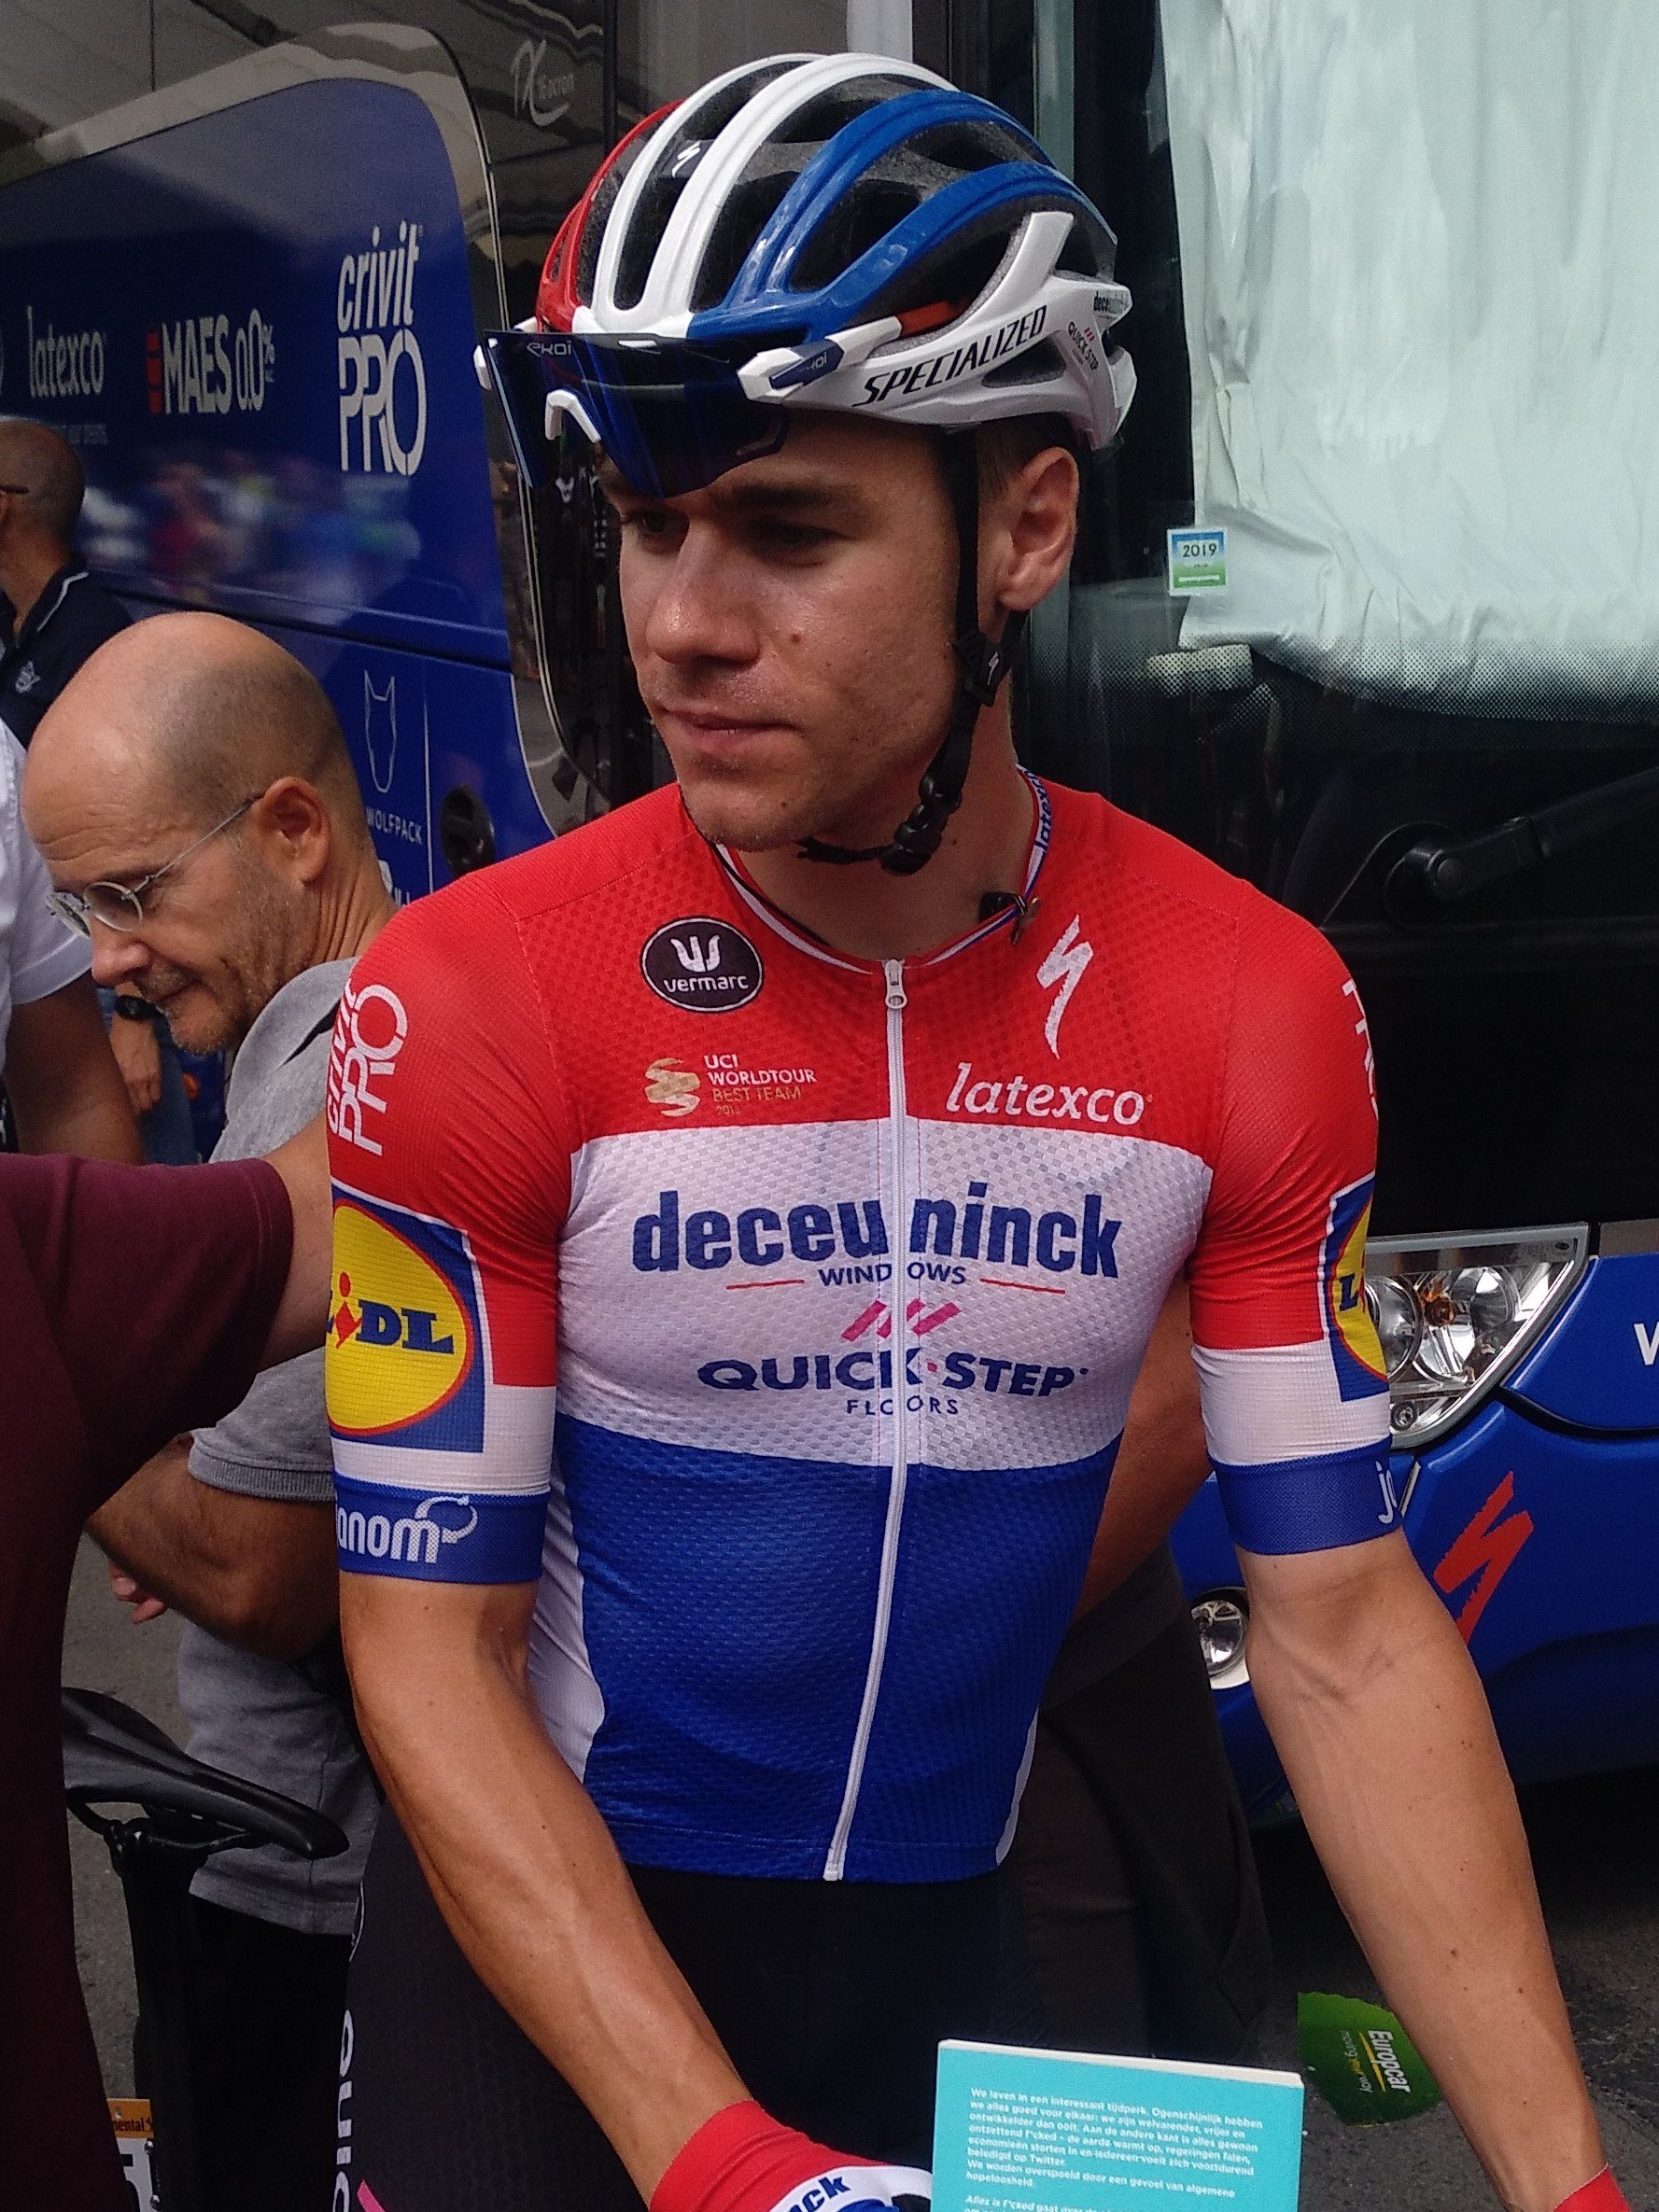 Fabio Jakobsen, from the Deceuninck-Quick Step team, at the start in Bilbao in the 13th stage of the Vuelta a España on September 6, 2019 | Photo: Wikipedia/PB84/Fabio Jakobsen - Vuelta a España 2019/CC BY-SA 4.0